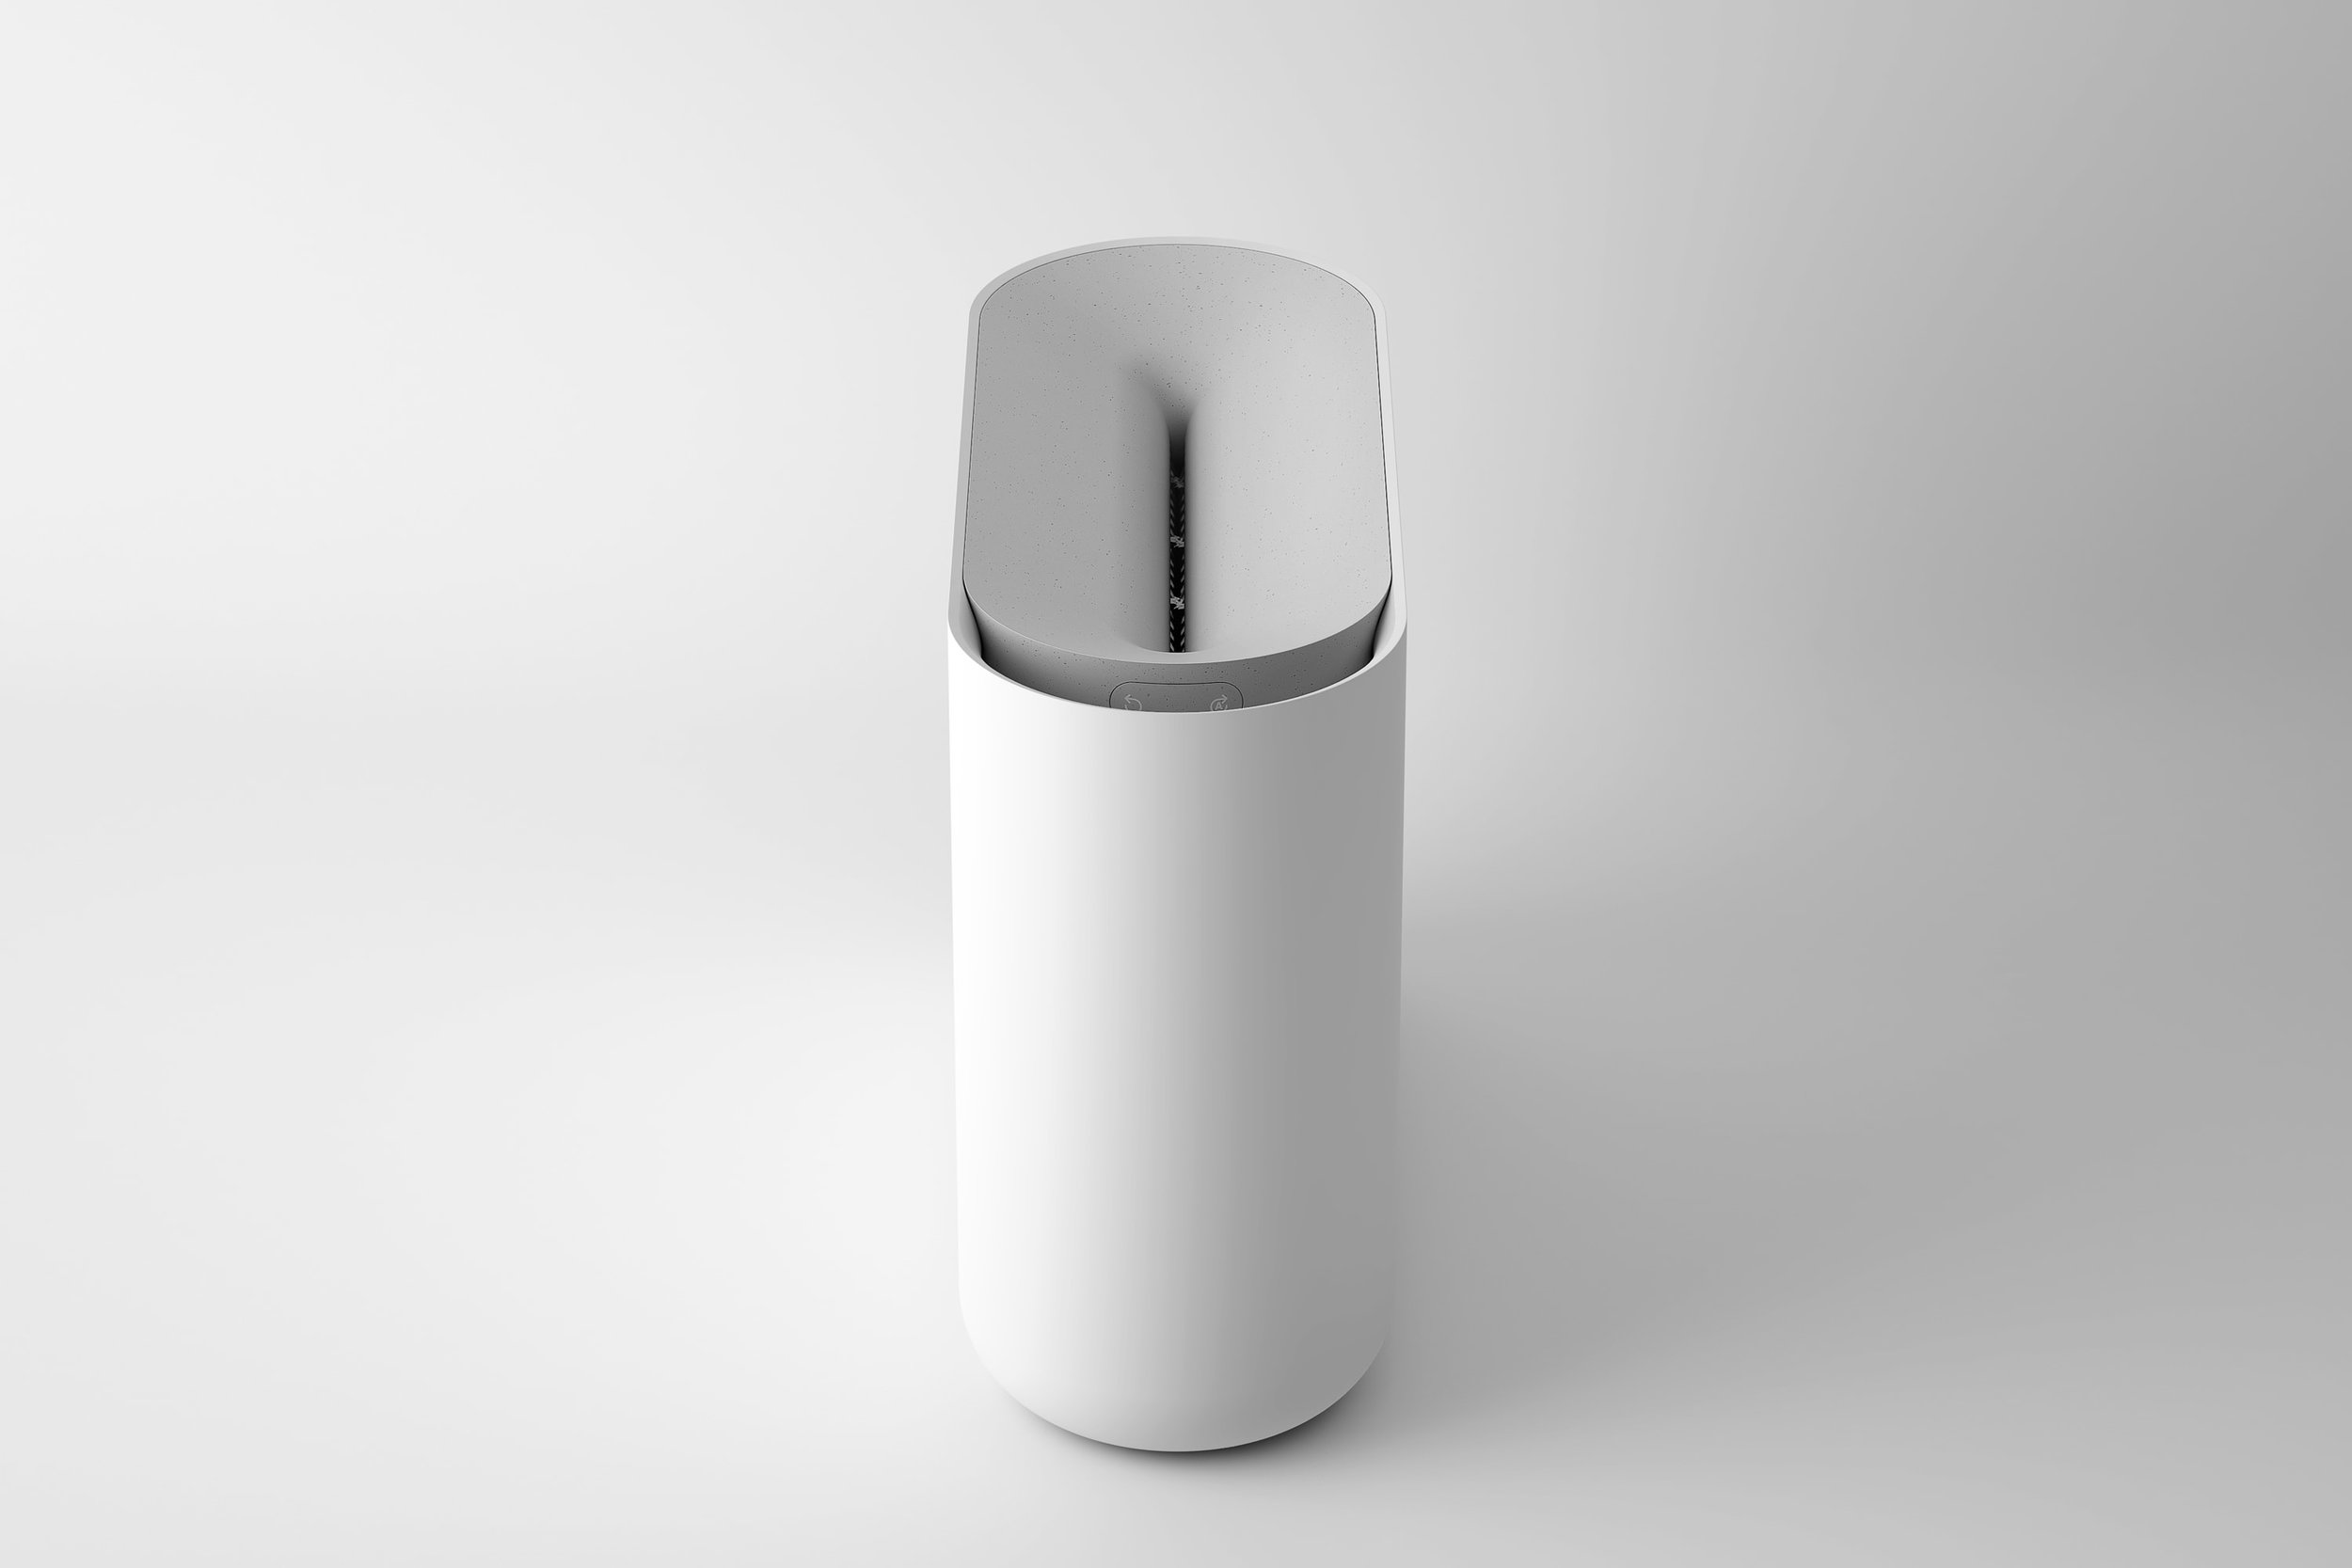 Blond-Industrial-Product-Design-Agency-Studio-London-Paper-Shredder-05.jpg